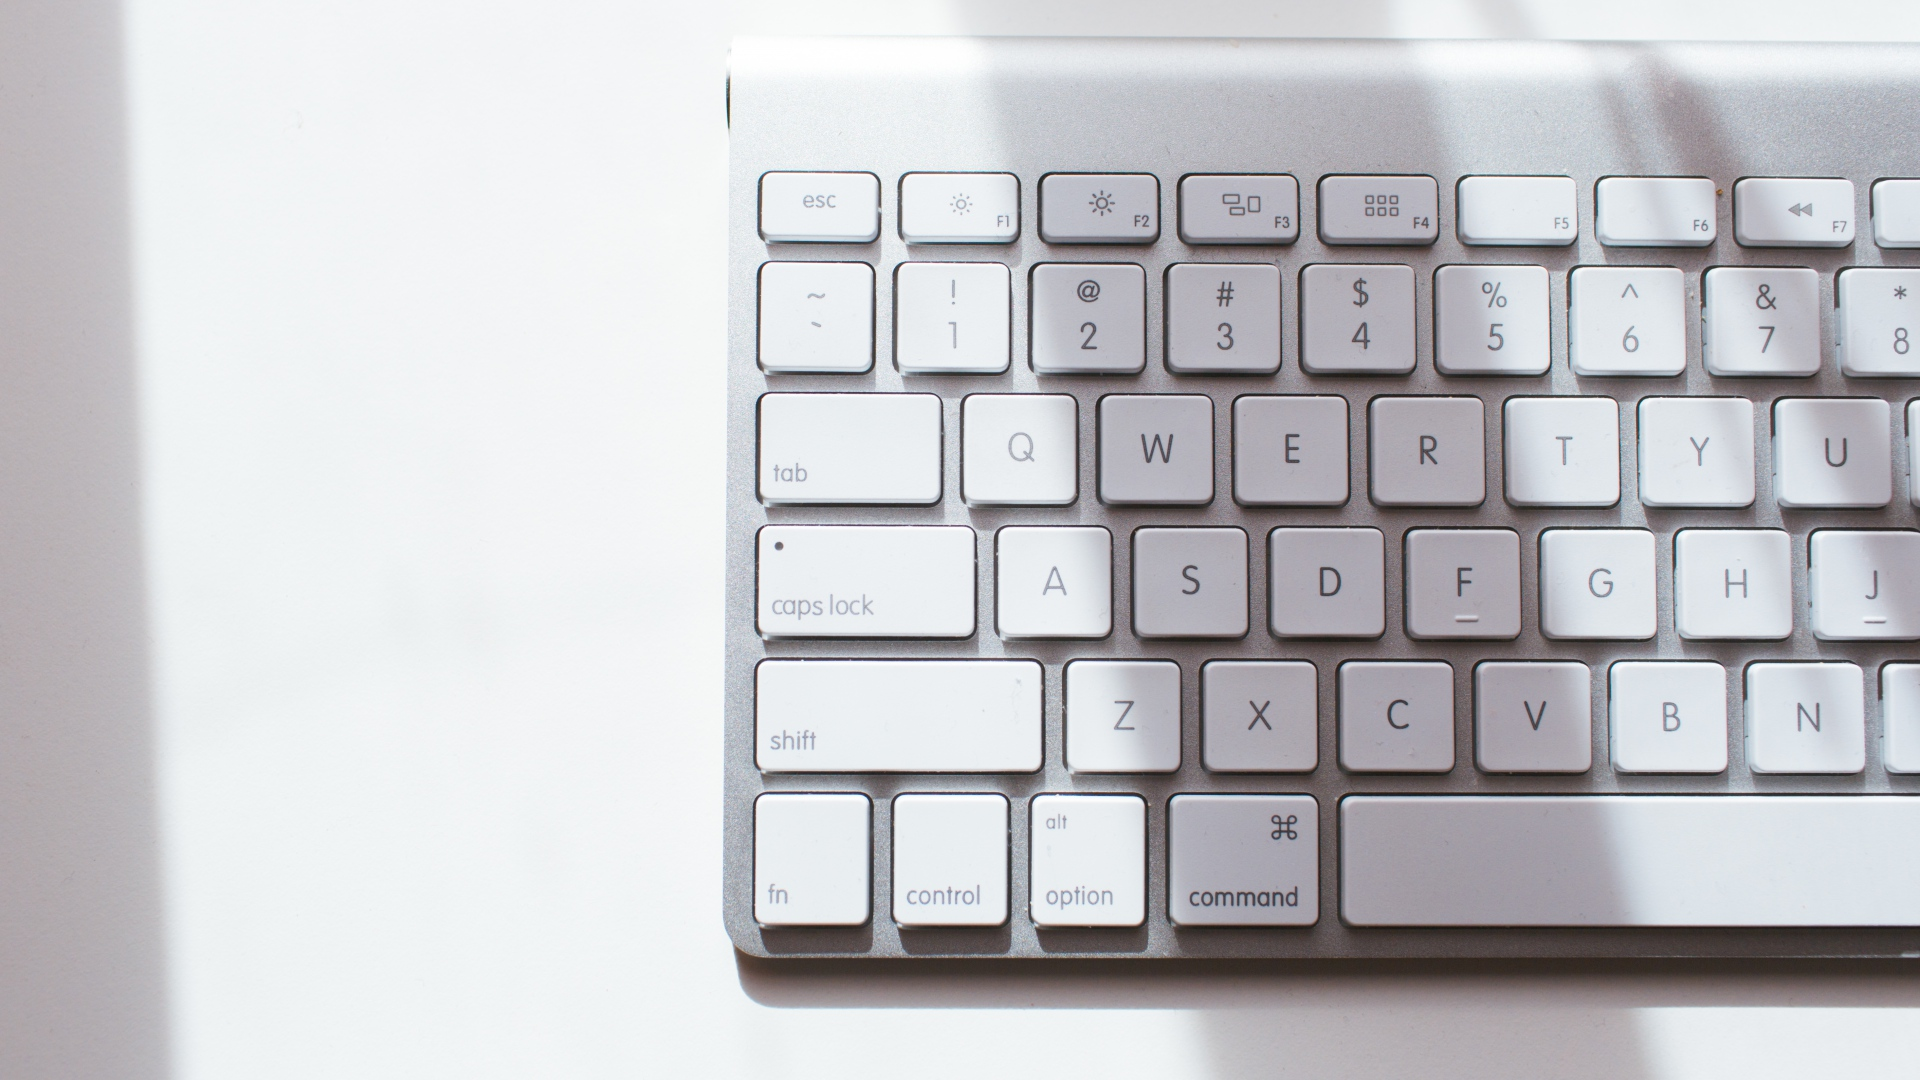 Apple Keyboard, HD Computer, 4k Wallpapers, Images